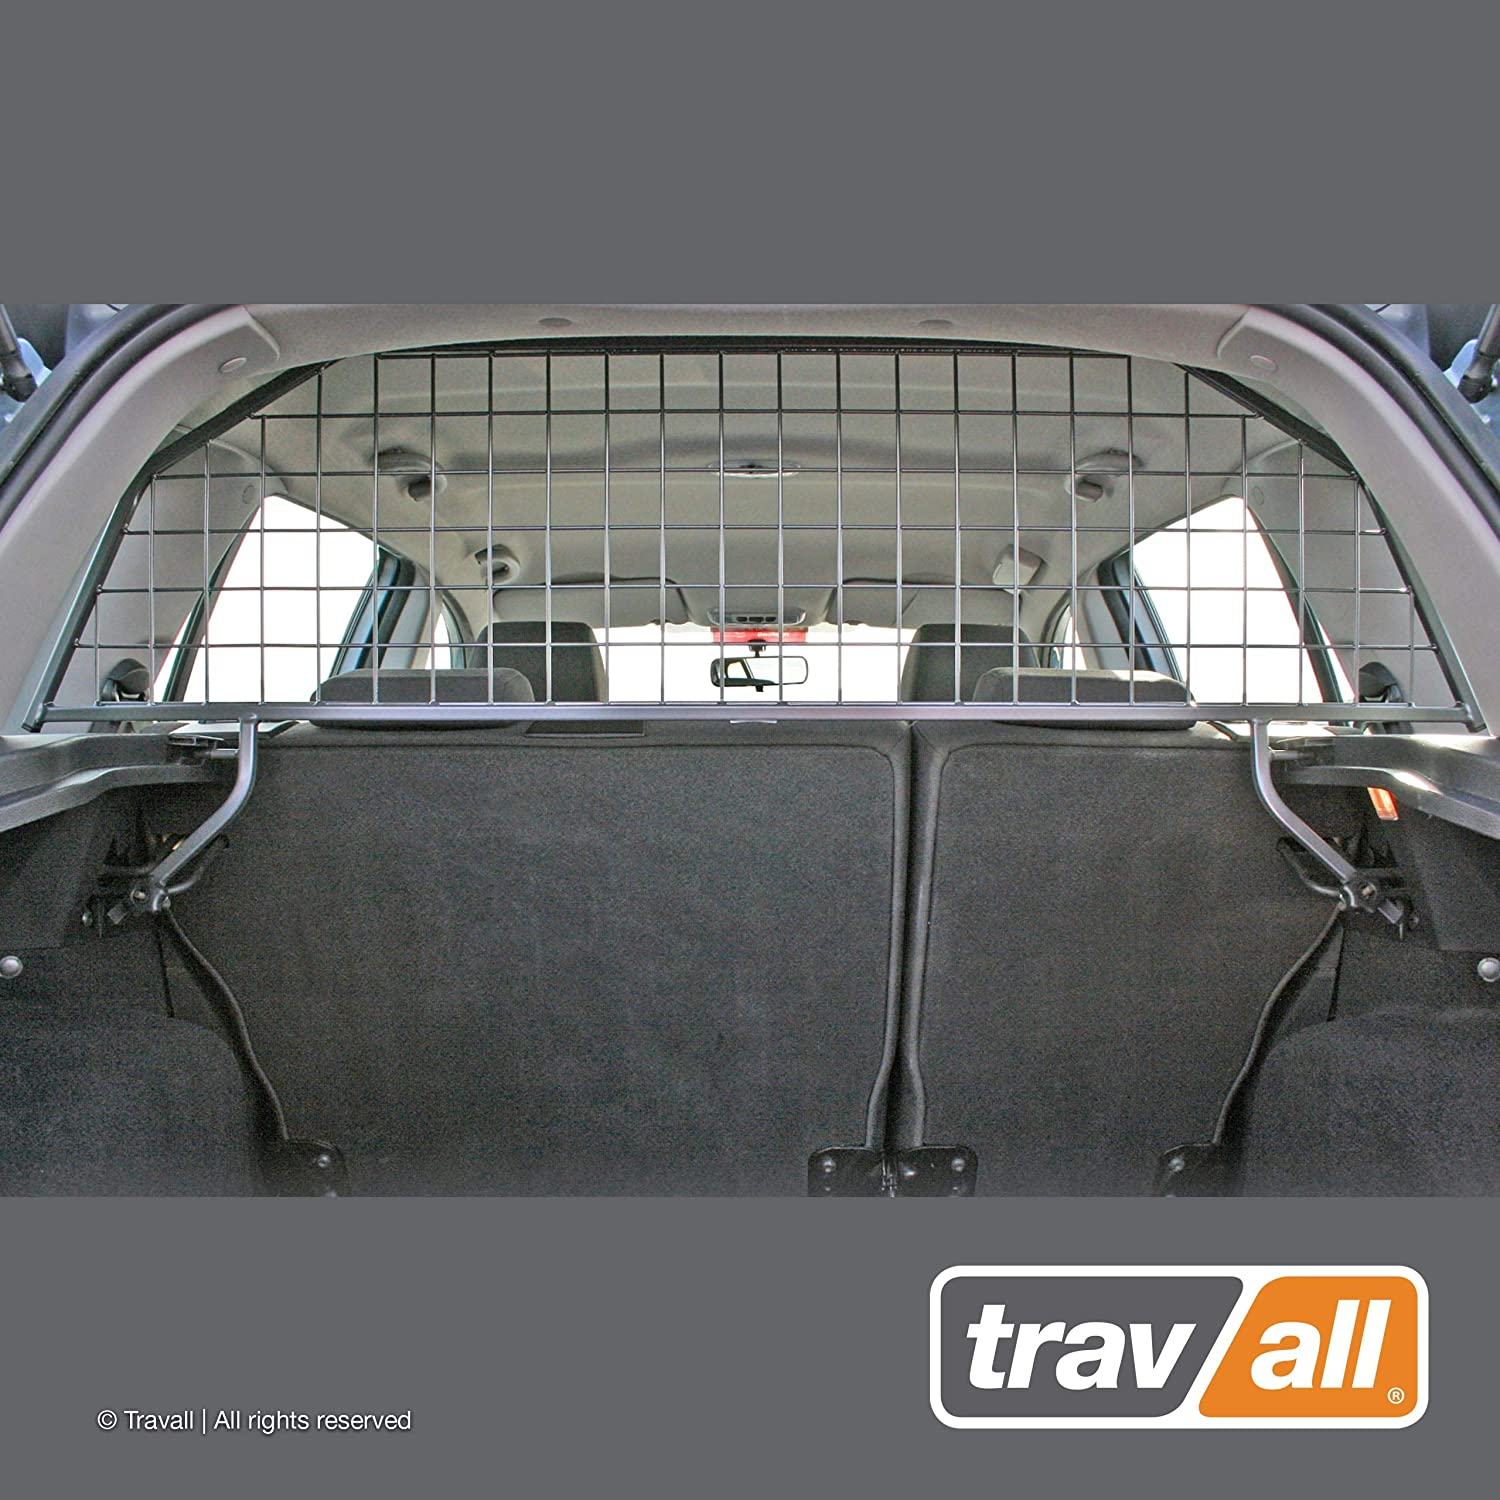 Travall Guard Compatible with Ford Fusion Hatchback (2002-2012) TDG0400 - Rattle-Free Steel Pet Barrier